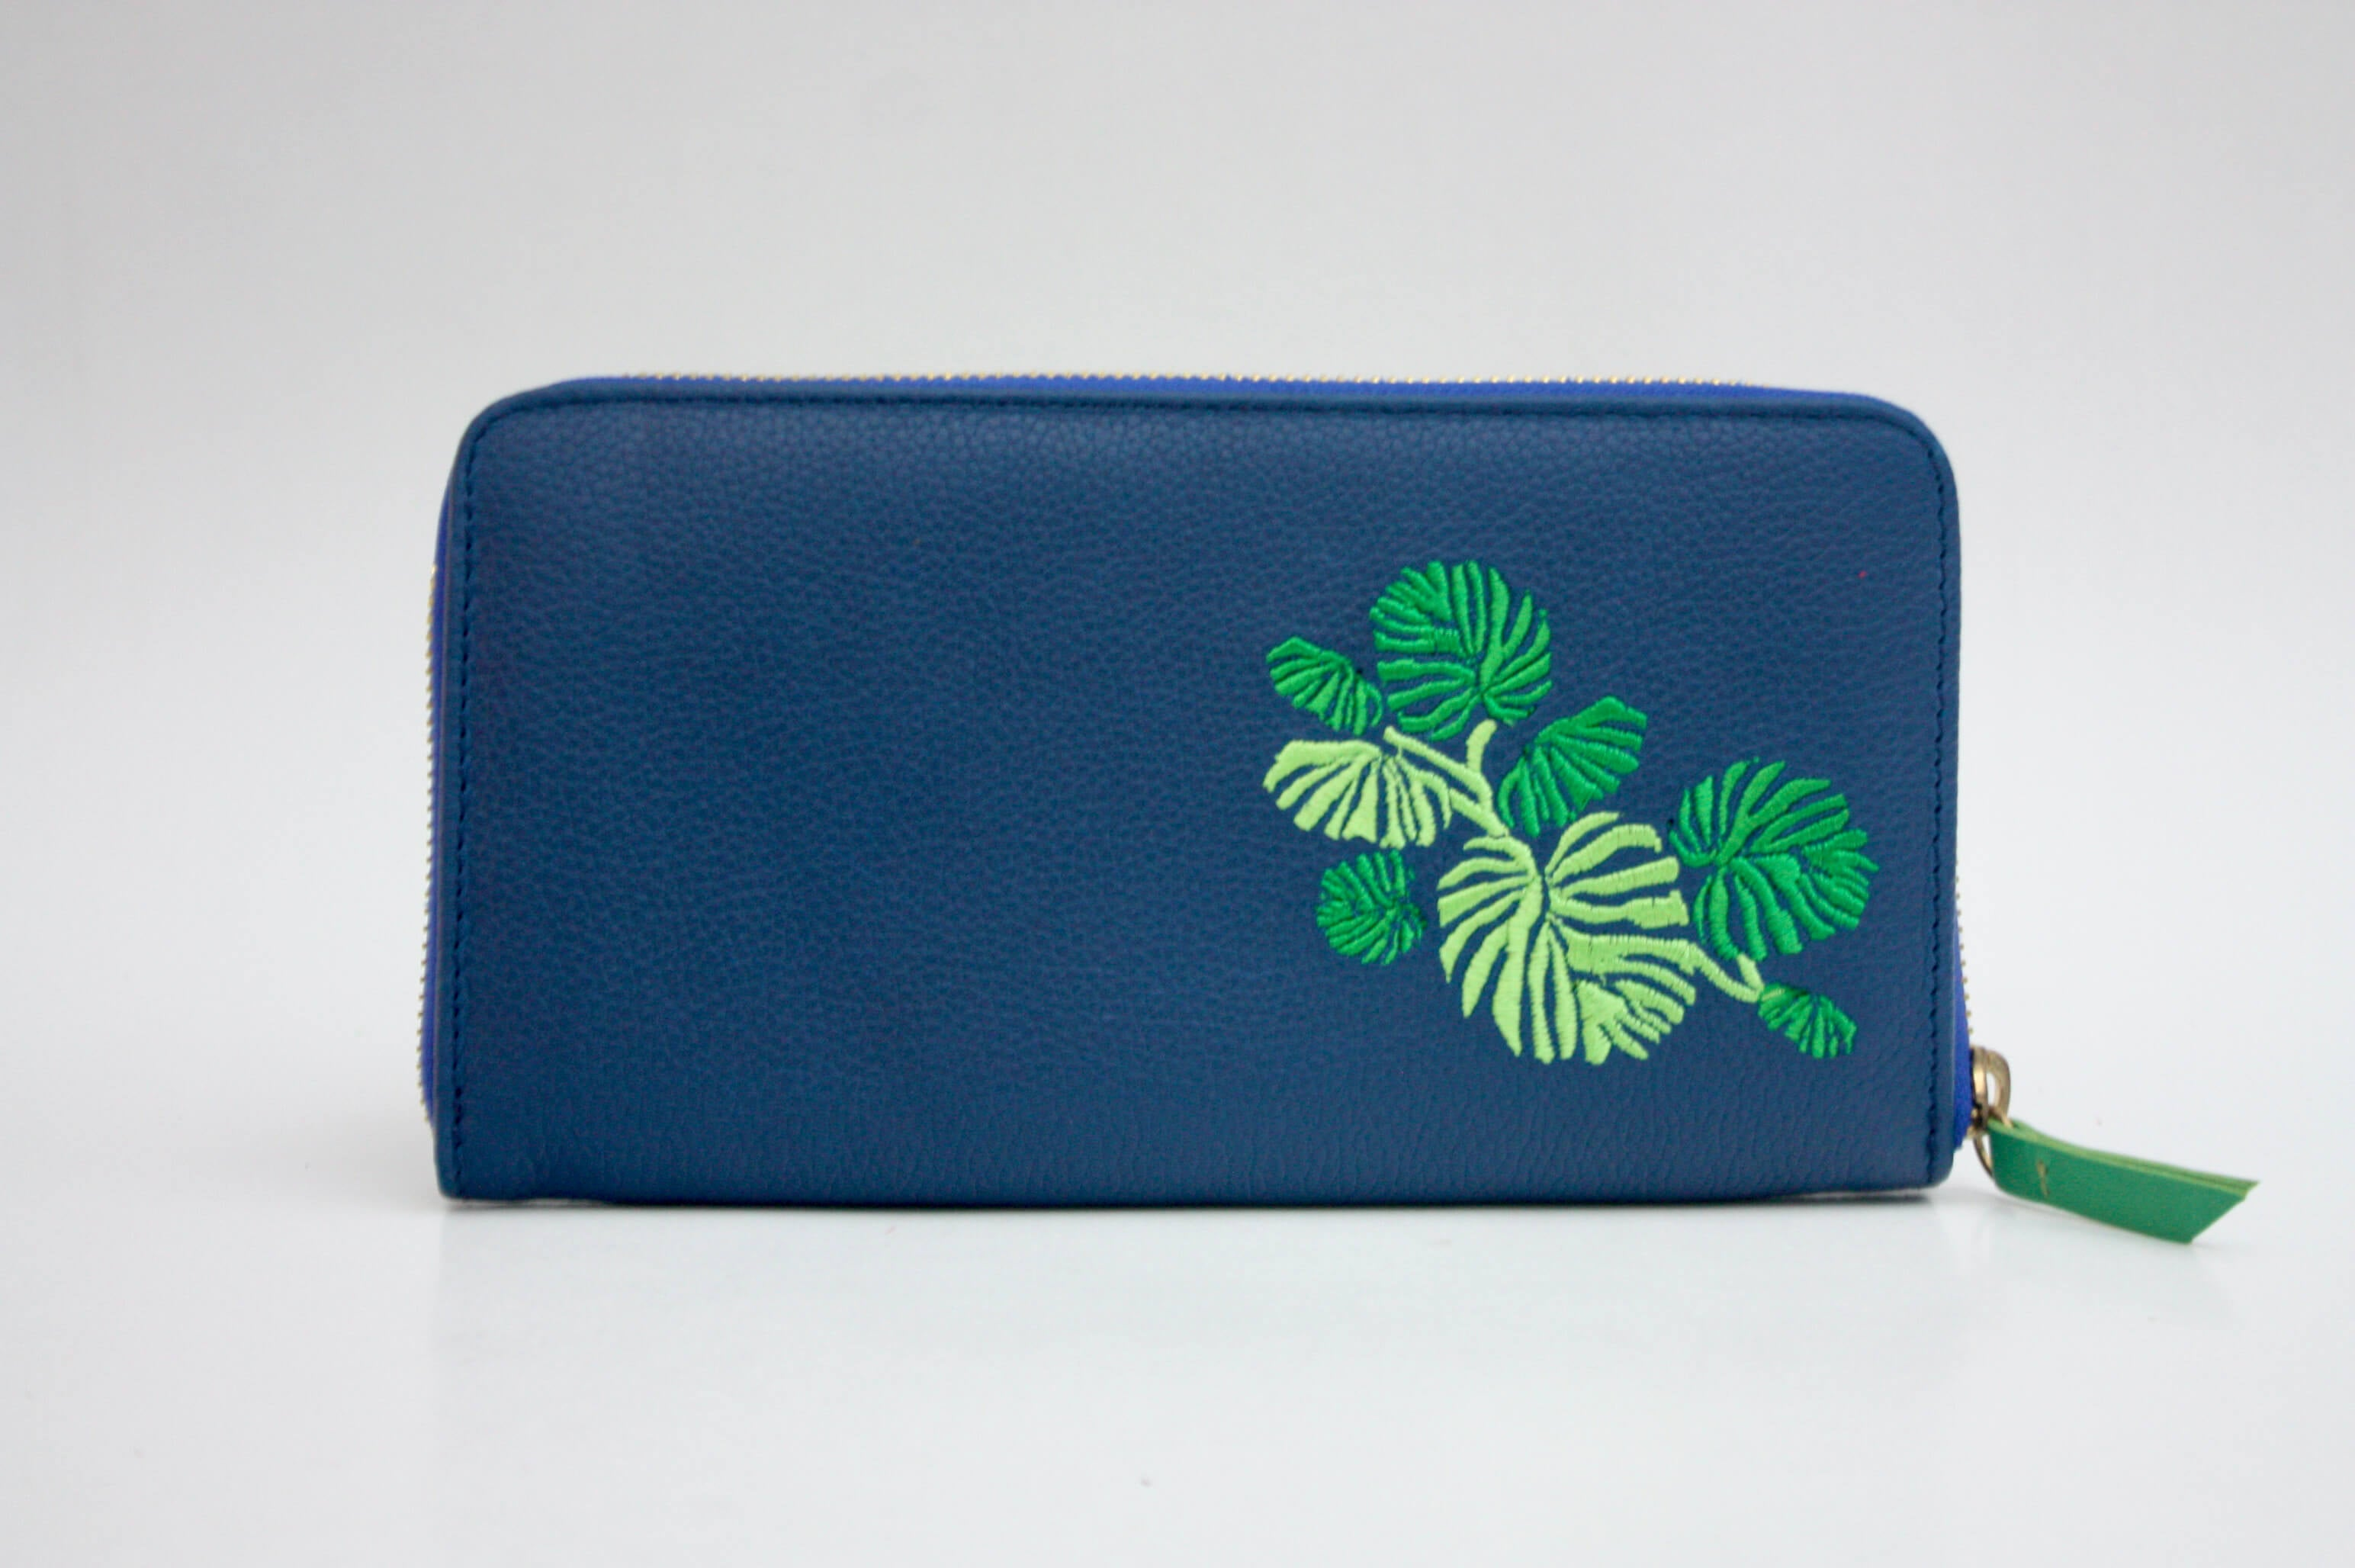 blue leather purse with green leaf embroidery